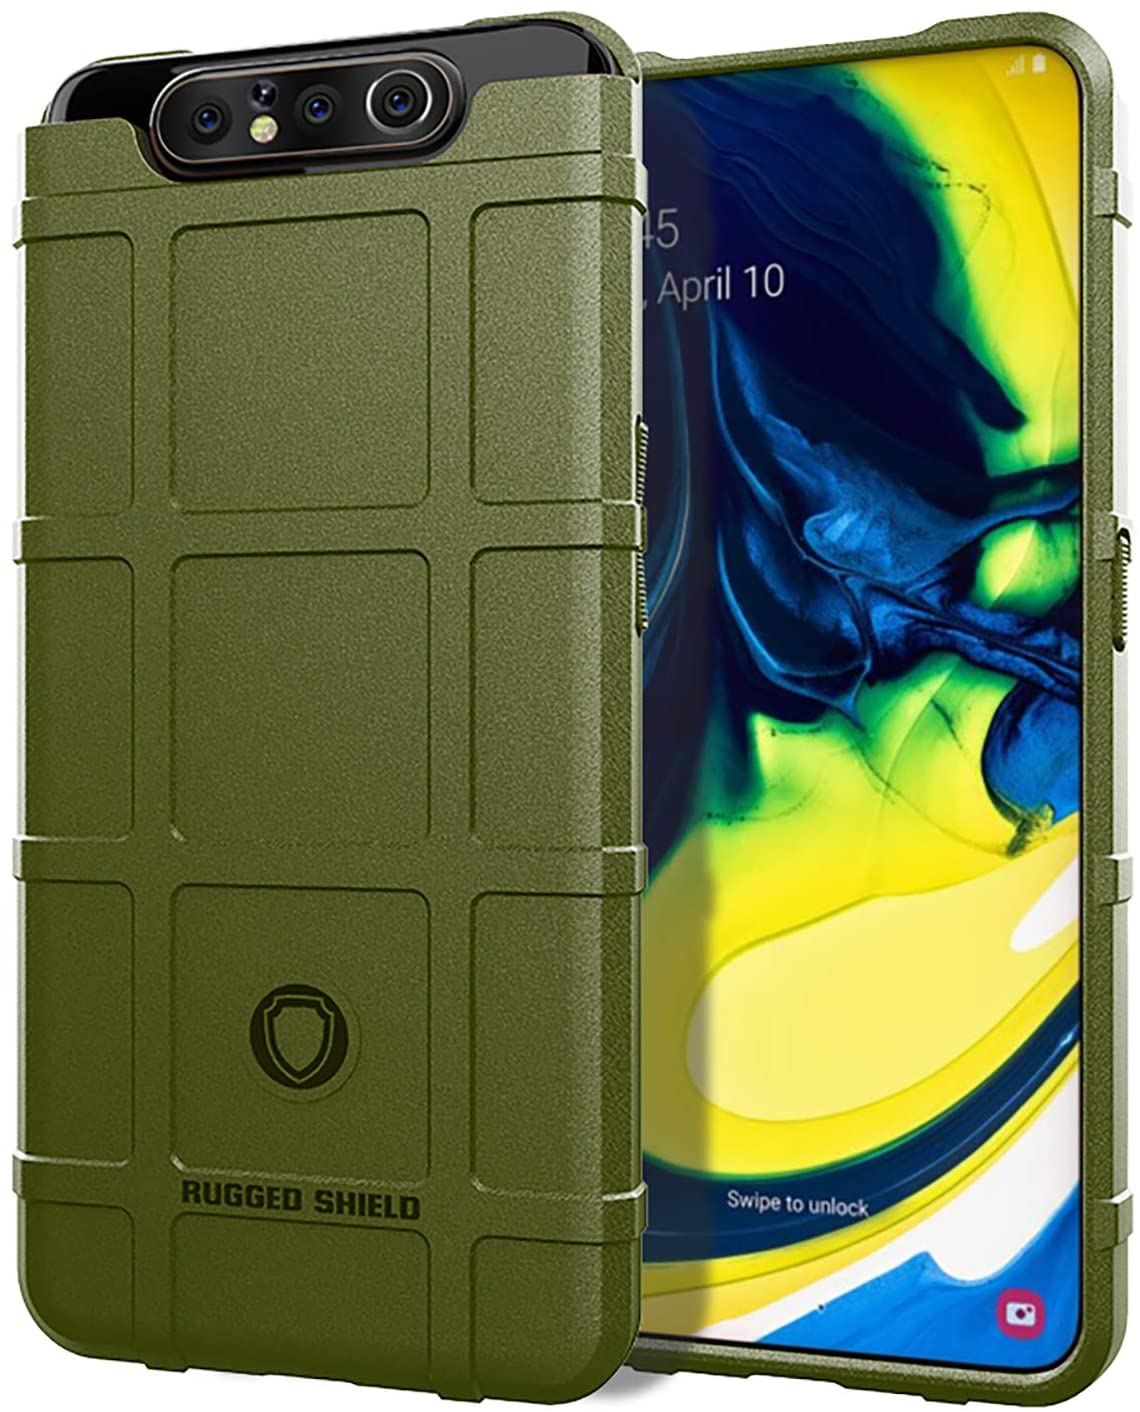 ZYZXJSGHD Samsung Galaxy A80/A90 Case,Military Grade Drop Tested Protective Phone Case Hybrid Heavy Duty Impact Resistant Cover for Samsung Galaxy A90 -Green